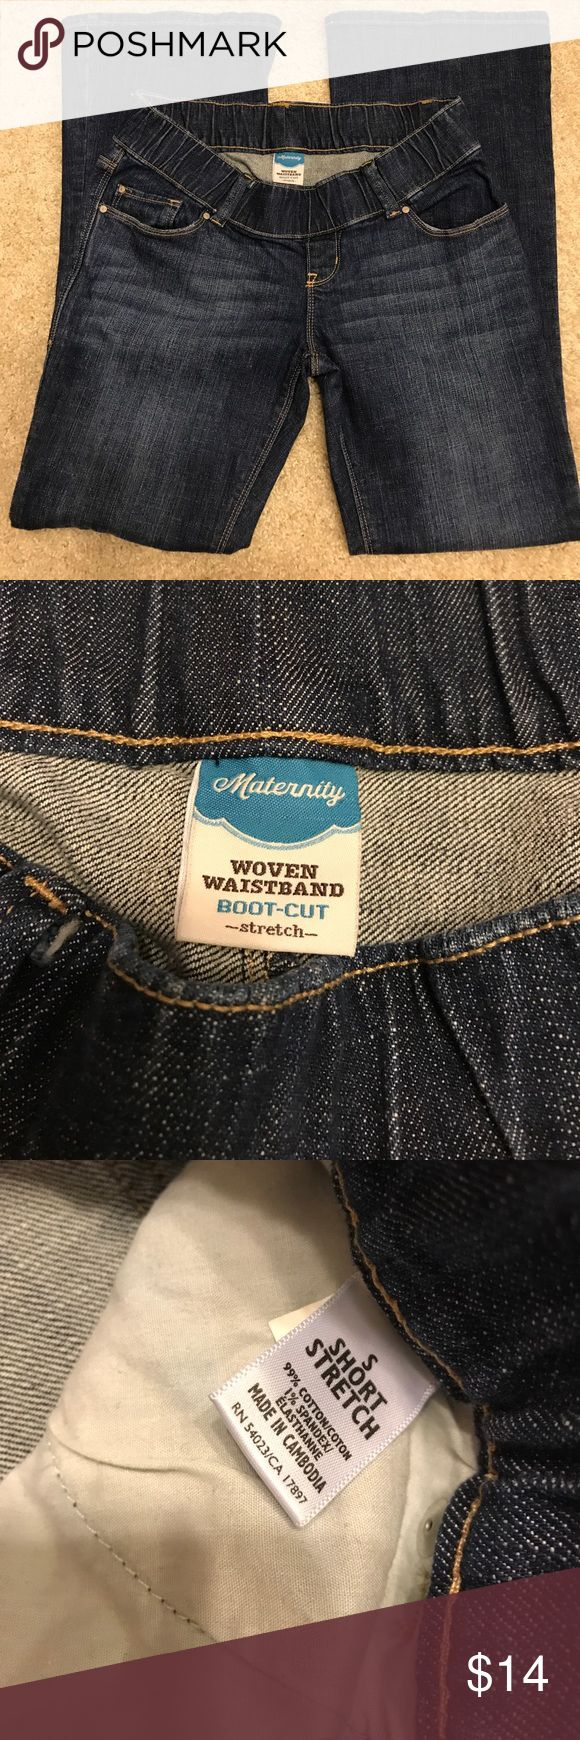 Old navy petite small maternity jeans These jeans are like new from a smoke and pet free home Old Navy Jeans Flare & Wide Leg